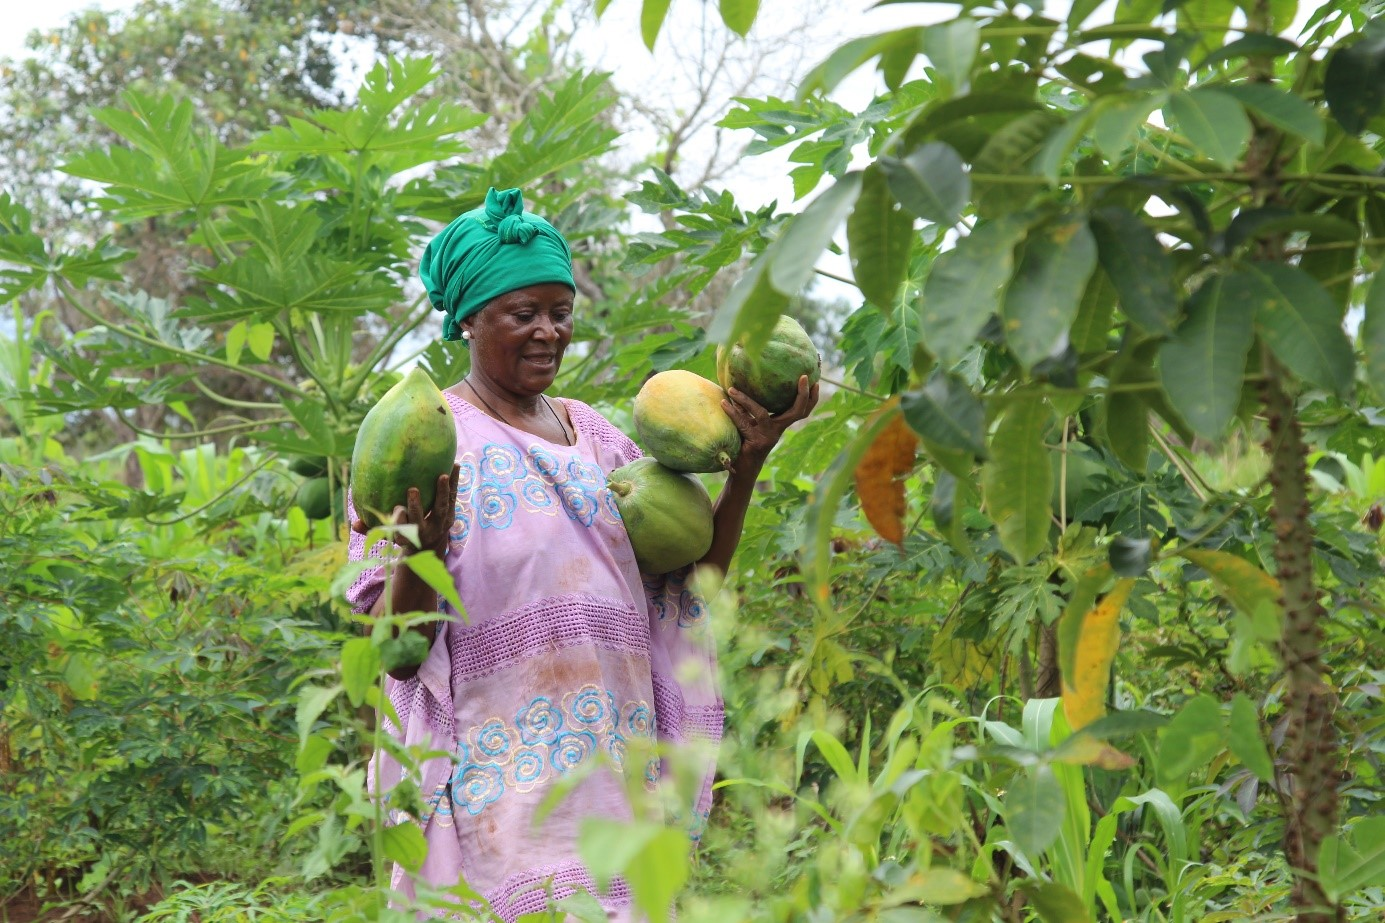 UN Women at the forefront of Economic Empowerment for Rural Women